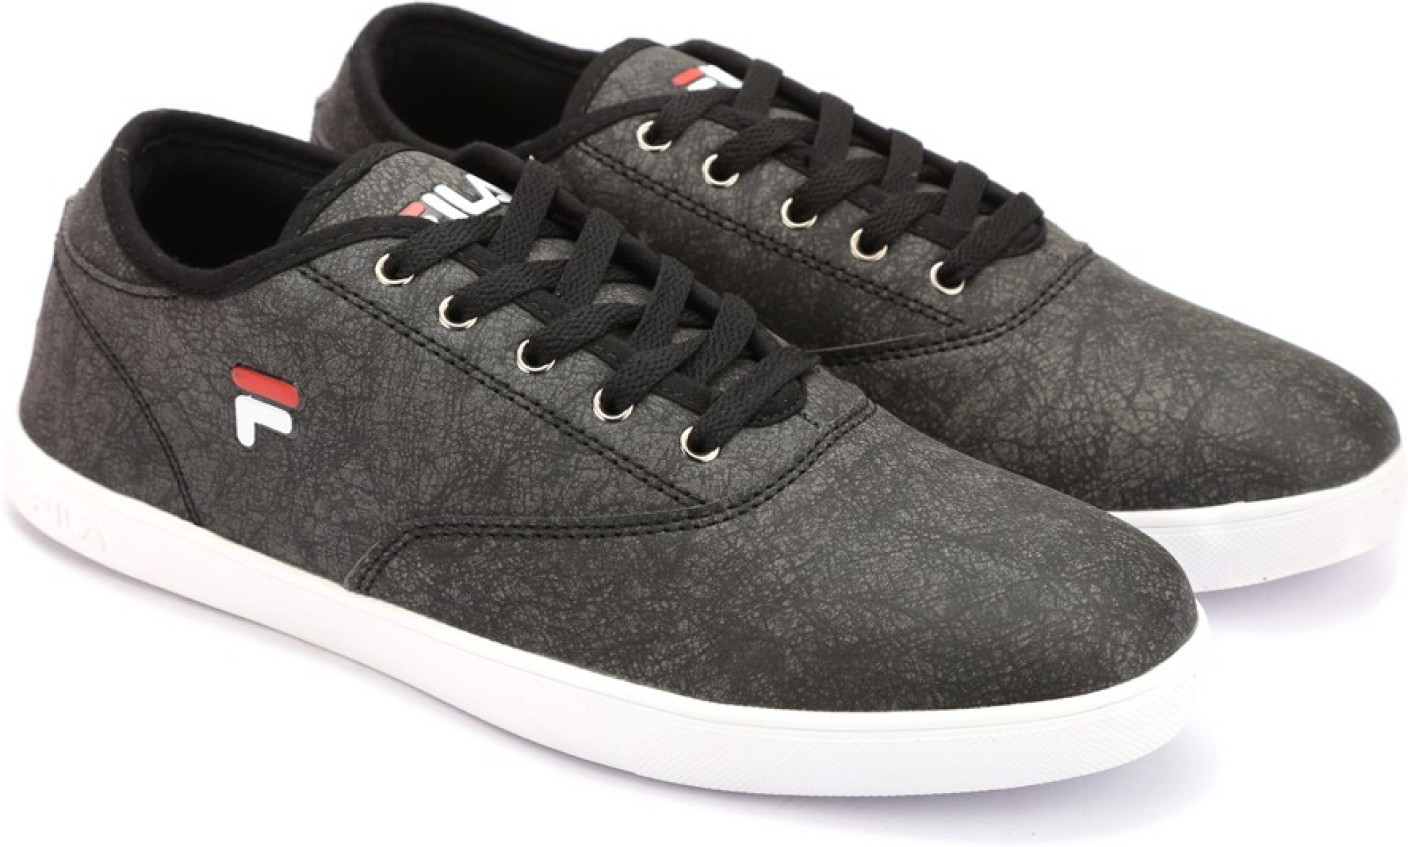 Fila Shoes Online Offer Price